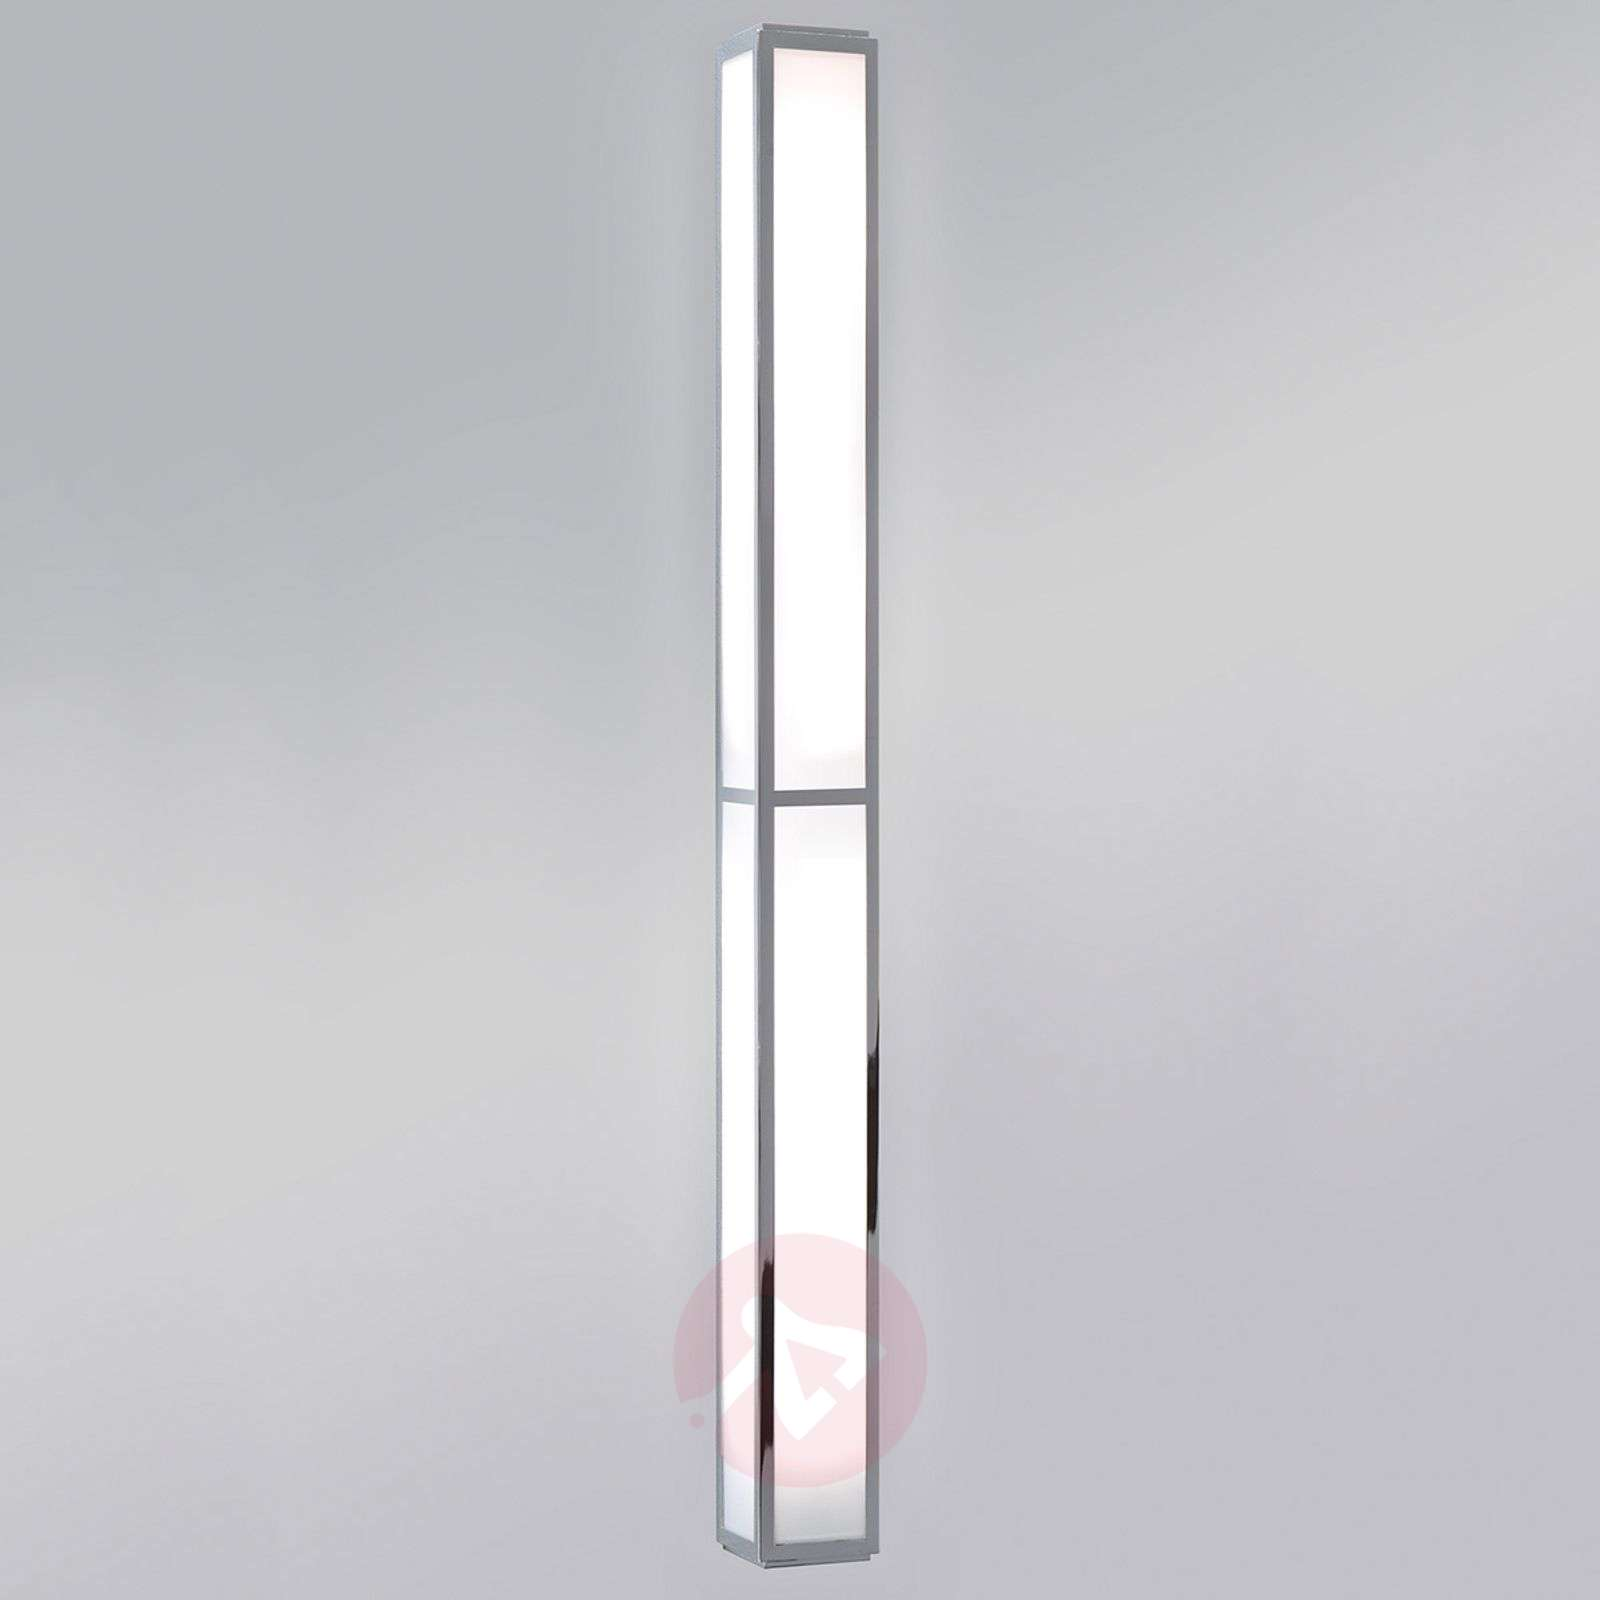 Mashiko 900 Wall Light Long-1020382-05